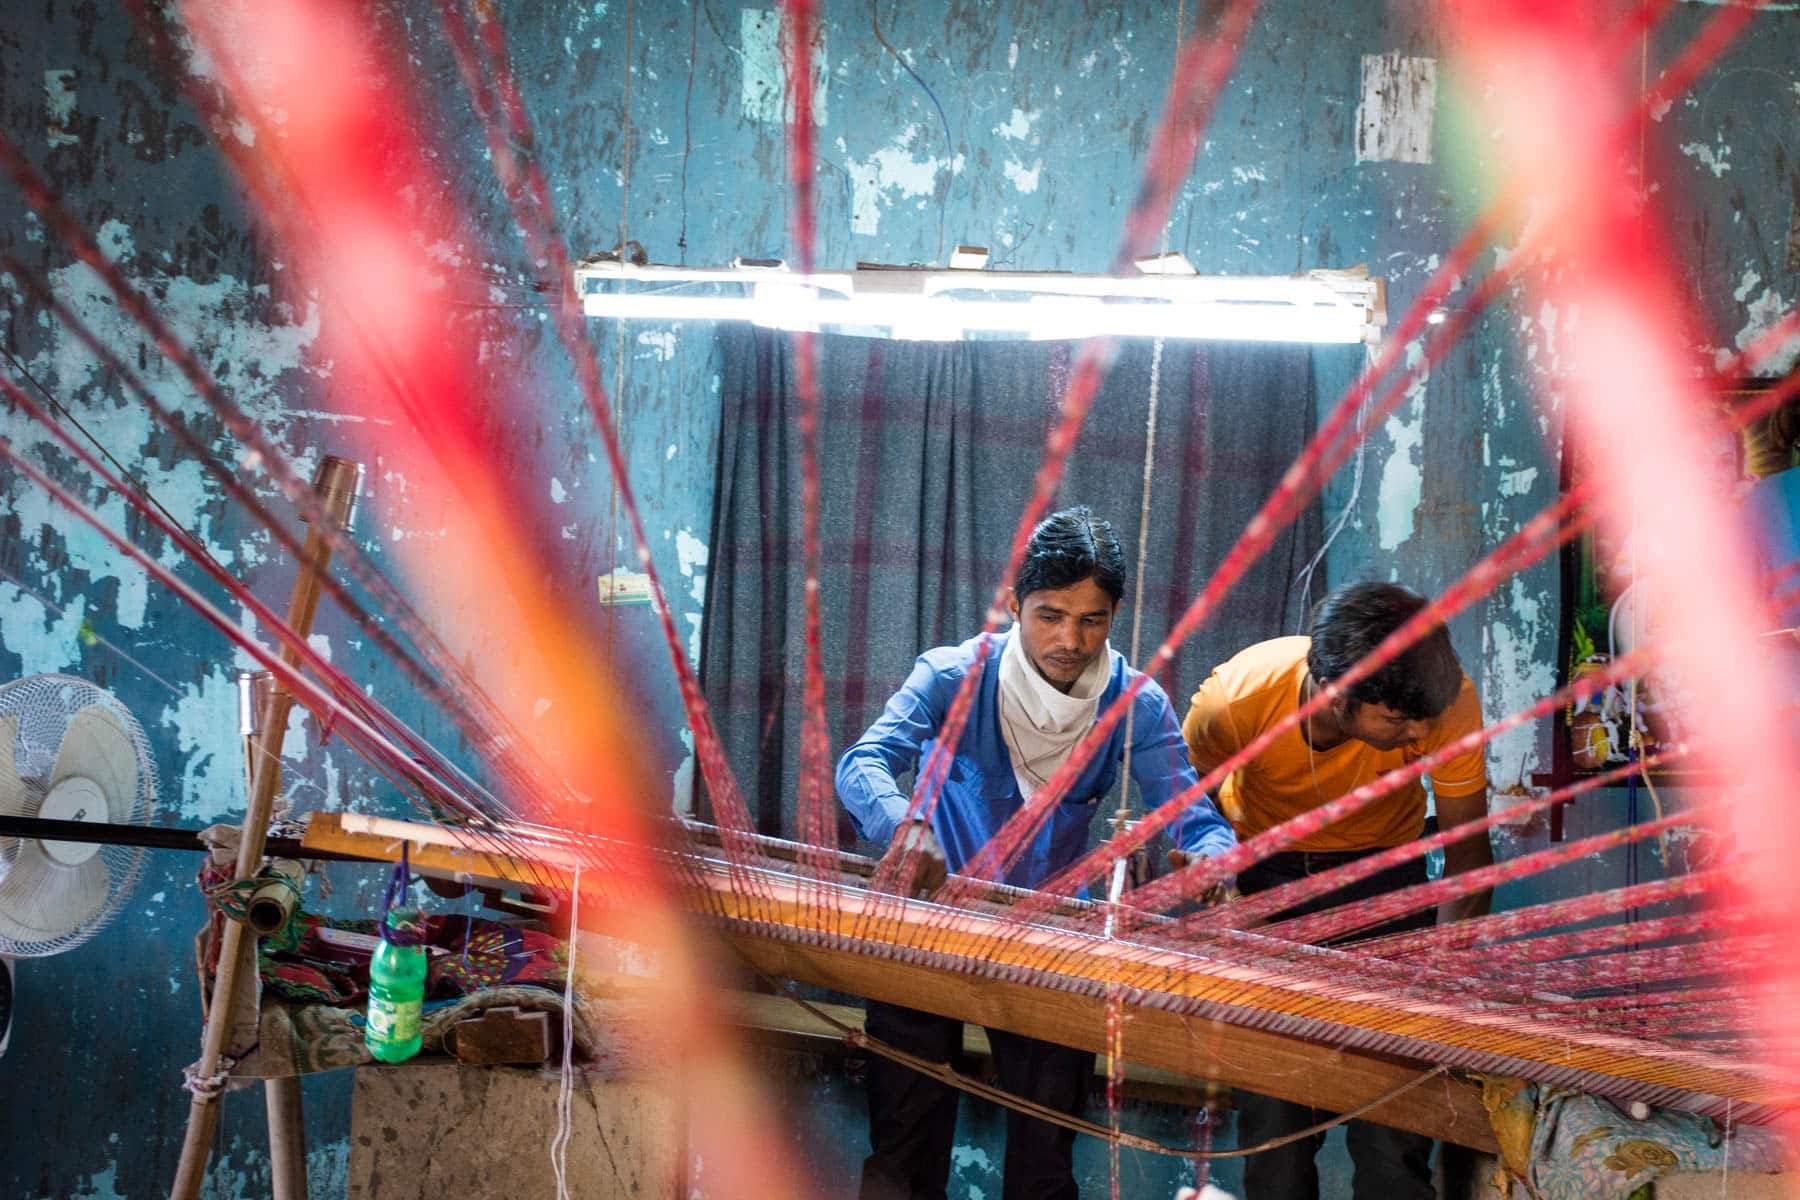 Why we fell in love with India - Patola weaving in Patan, Gujarat state, India - Lost With Purpose travel blog